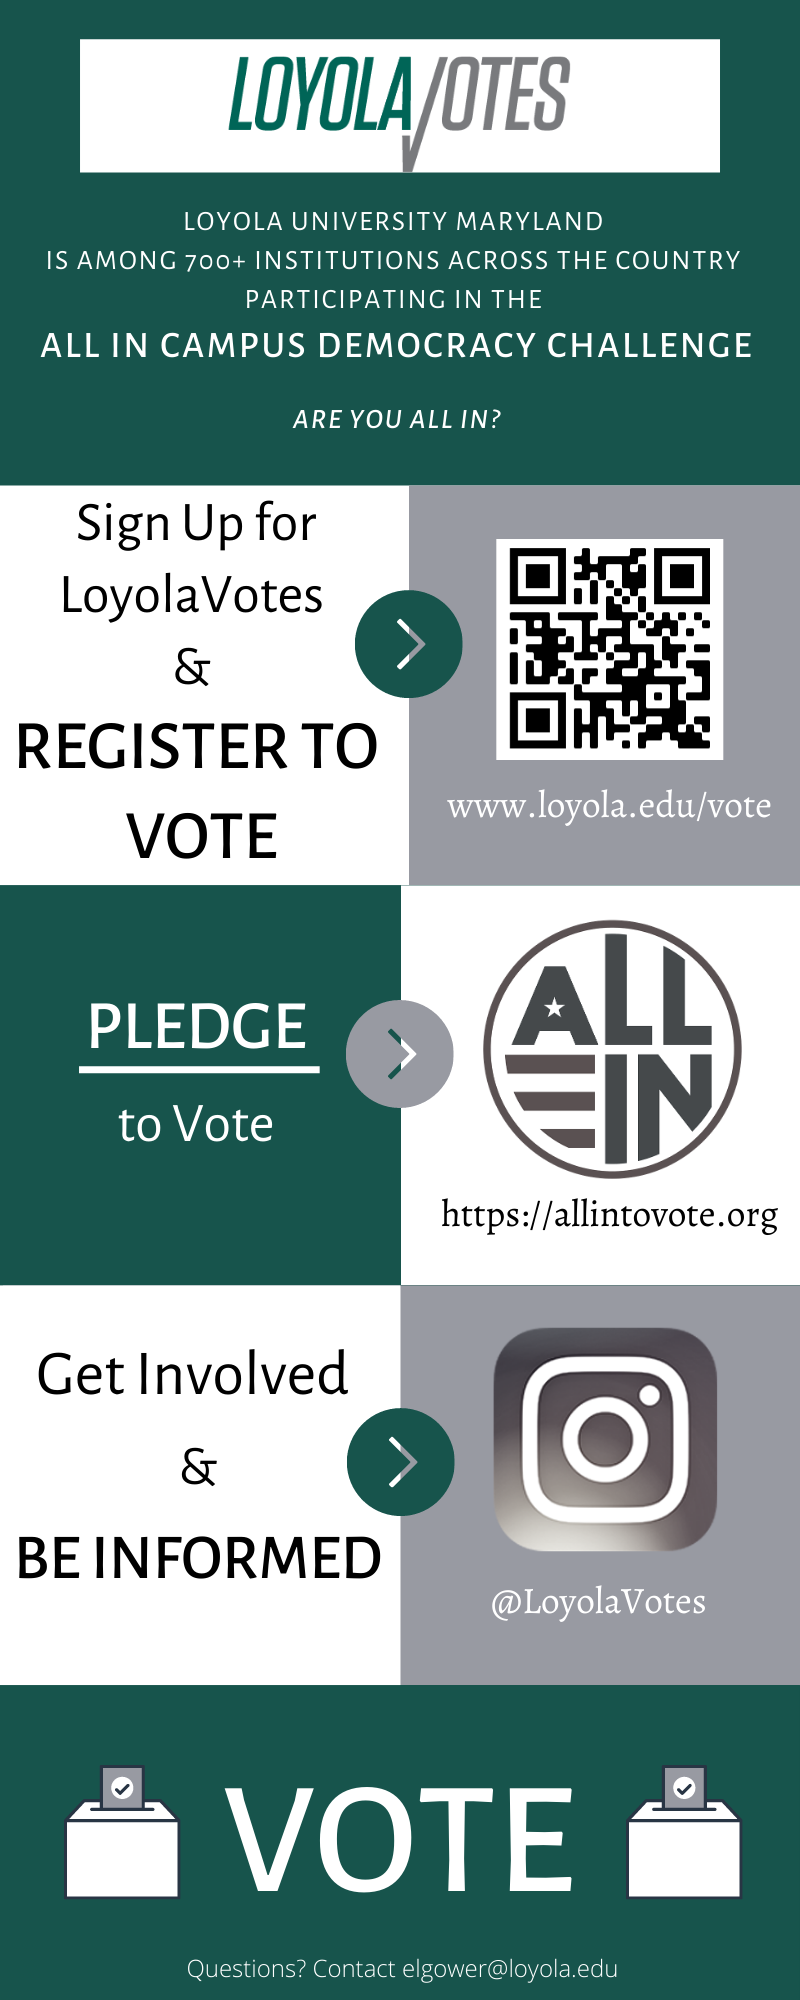 This is an infographic about LoyolaVotes. Loyola University Maryland is among 700+ Institutions across the country participating in the ALL IN Campus Democracy Challenge. Are you ALL IN? Sign up for LoyolaVotes and Register to Vote: www.loyola.edu/vote; Pledge to Vote: https://allintovote.org; Get Involved and Stay Informed: Instagram @LoyolaVotes